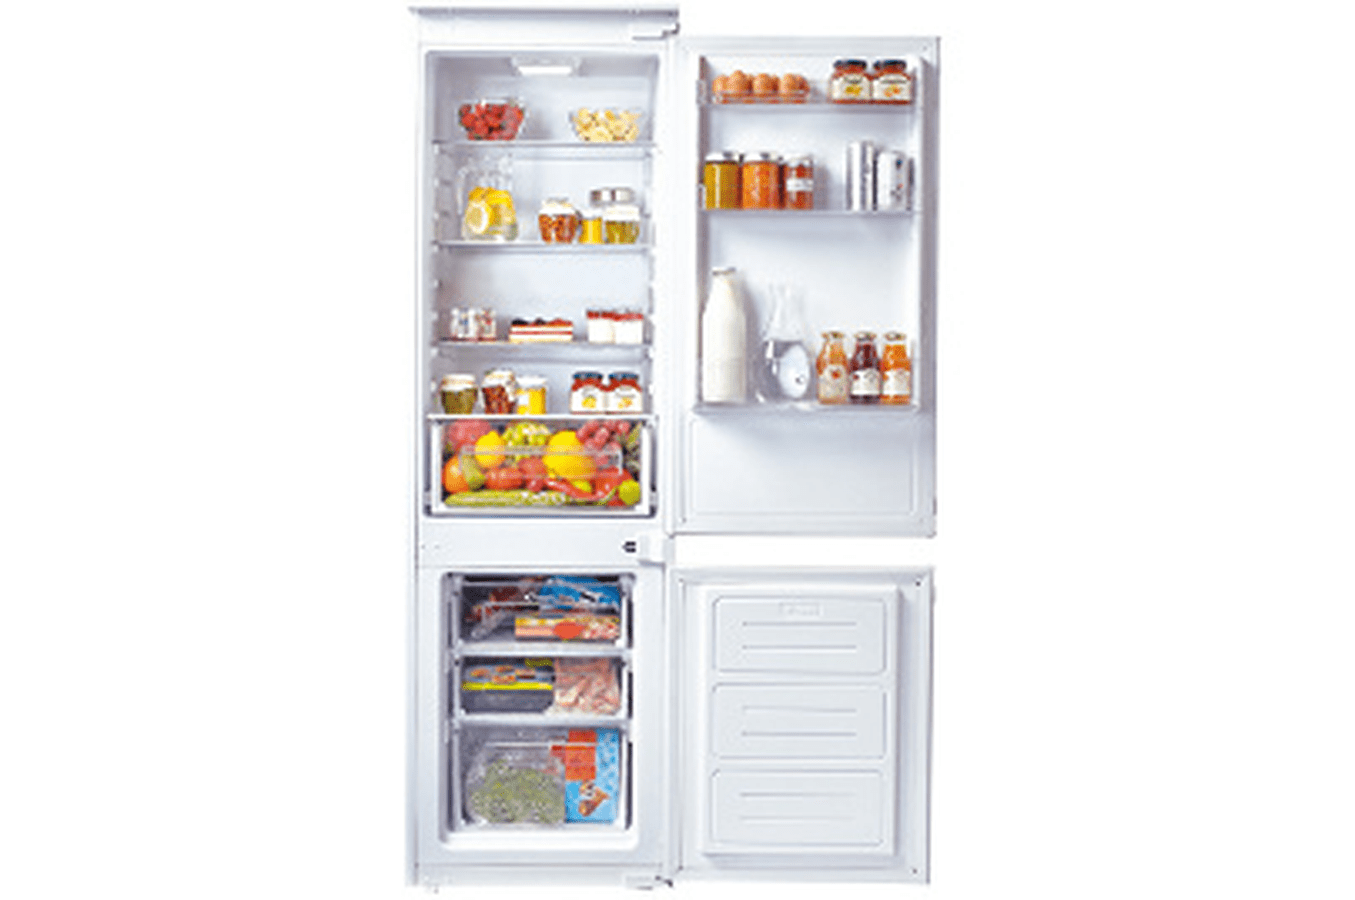 Comparatif Refrigerateur Congelateur